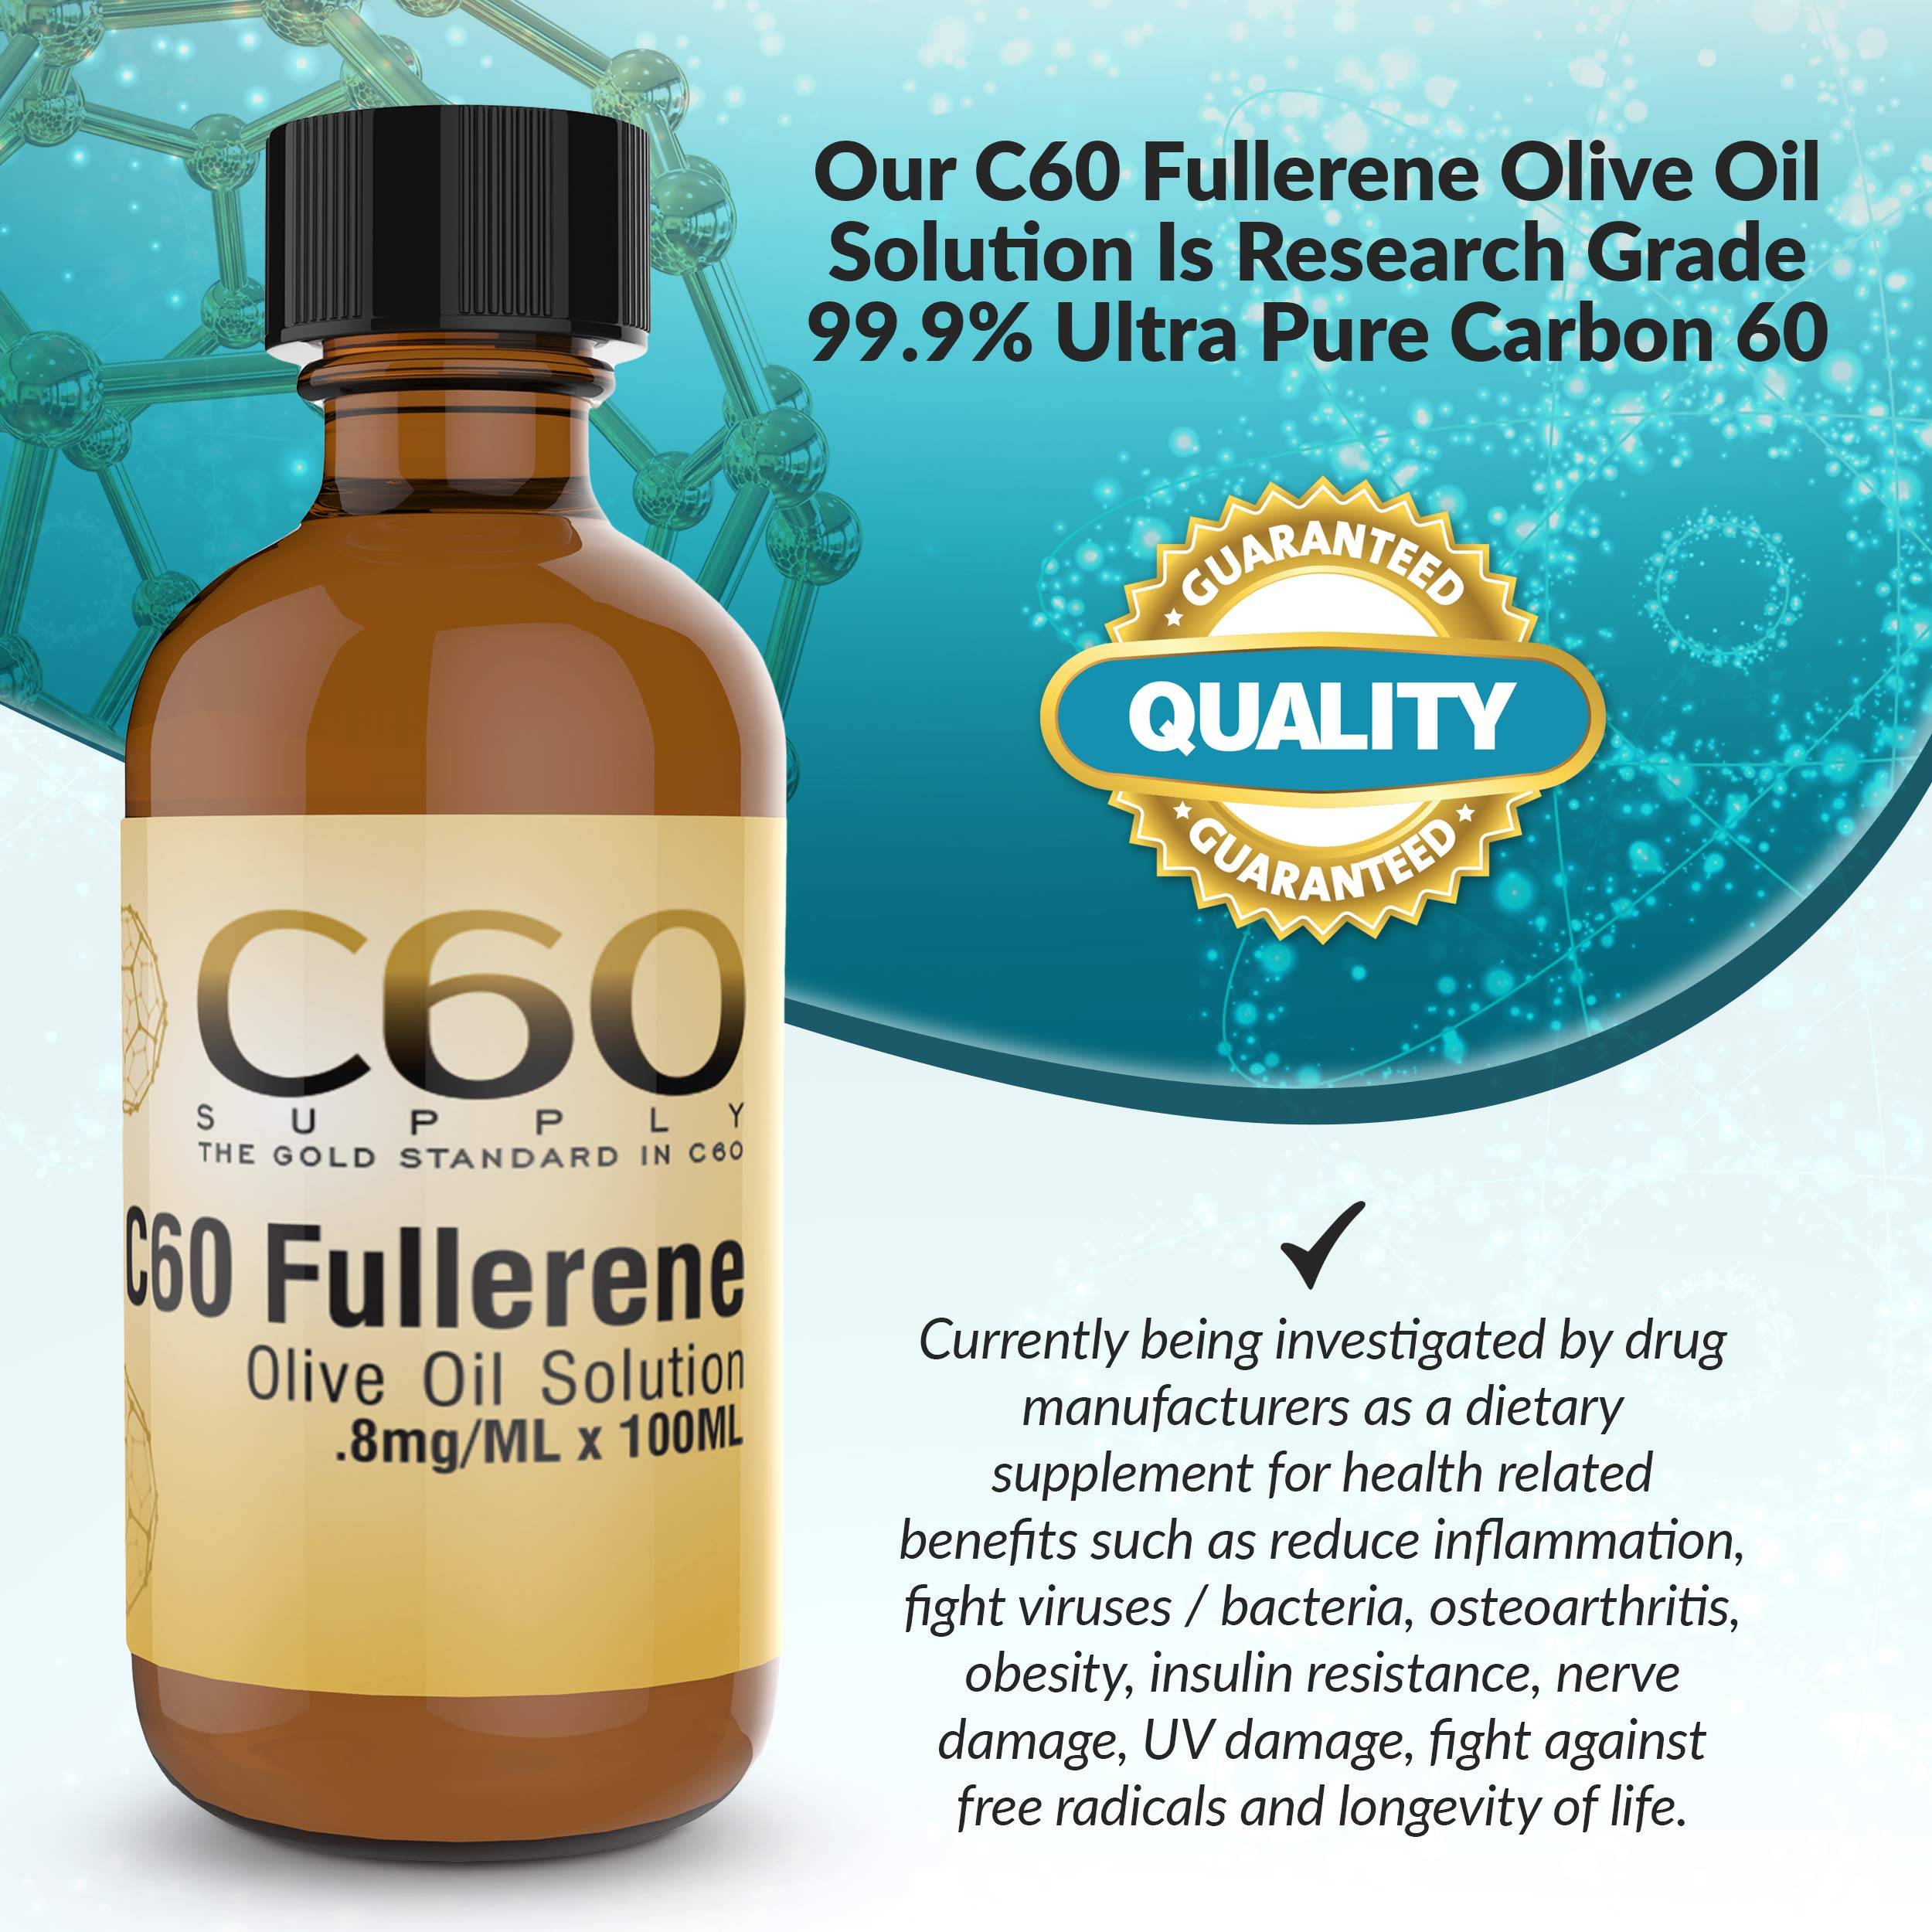 C60 in Olive Oil, Carbon 60 Supplement in Amber Glass Lab Bottles, C 60 Olive Oil, Organic 100ml 99.9% Ultra Pure FULLERENE C60 Supplement. Solvent Free BUCKMINSTERFULLERENE Carbon 60 Olive Oil by C60 Supply (Image #3)